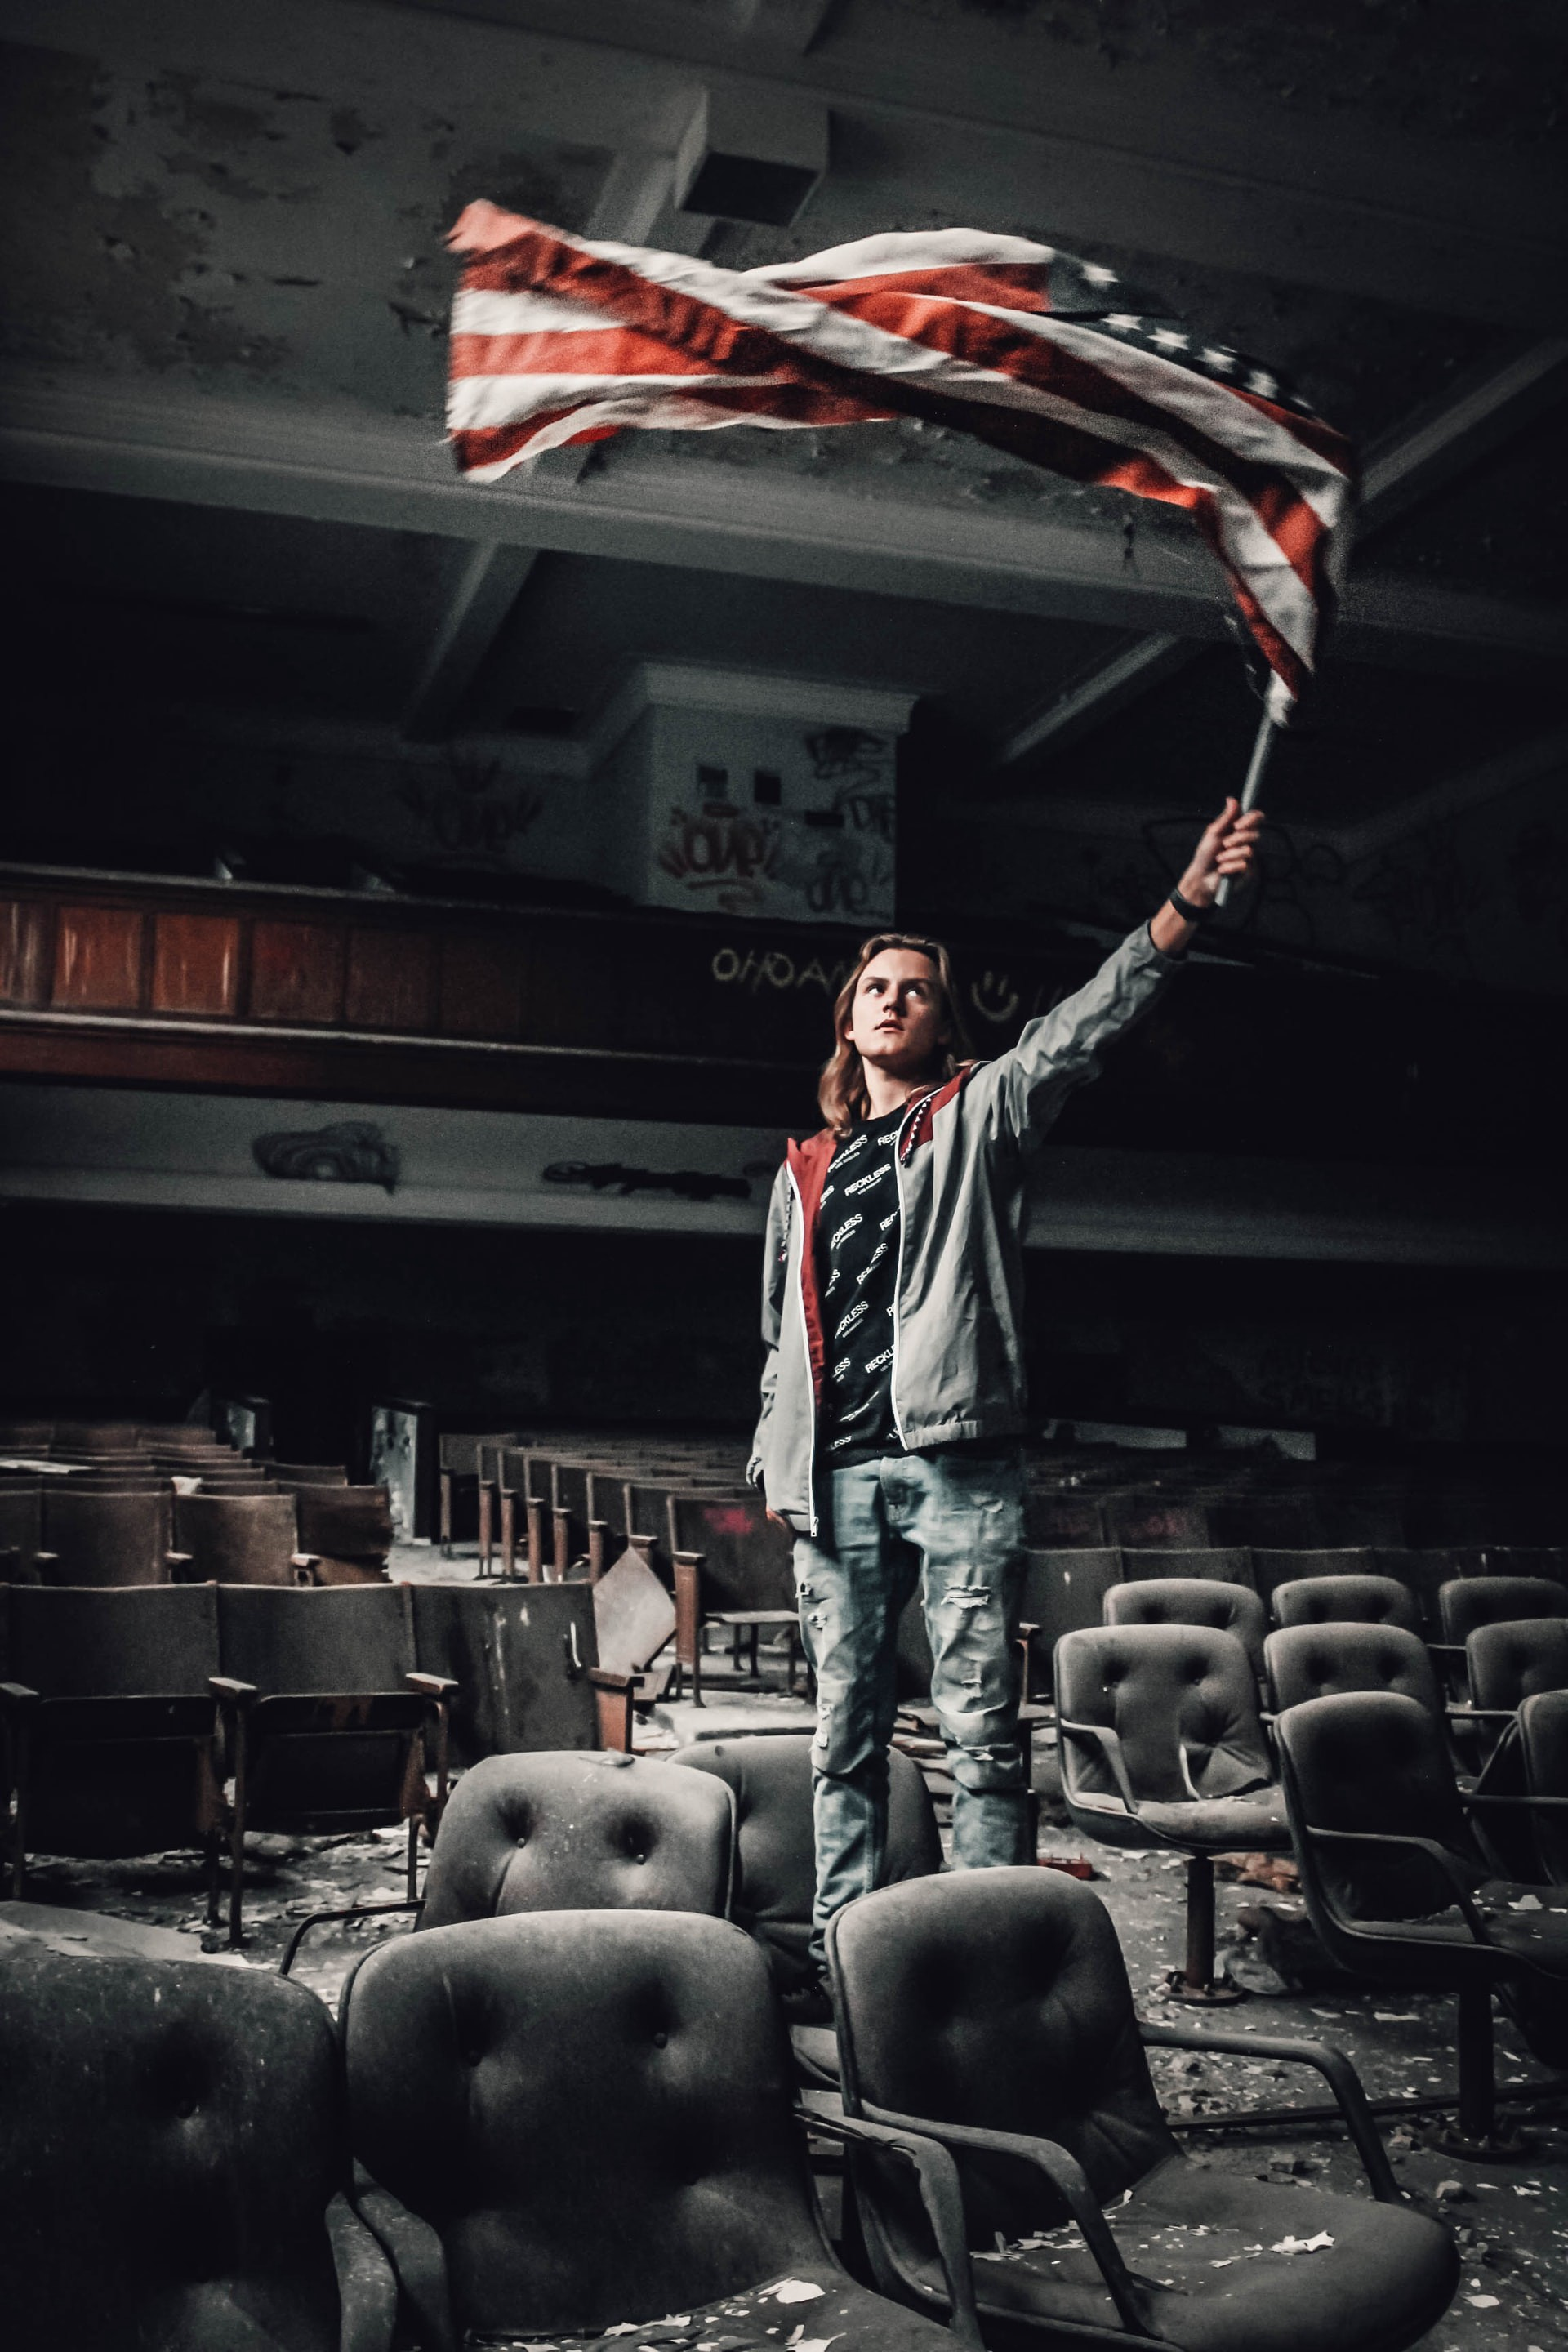 Young man waving an American flag in an old decaying empty theatre.